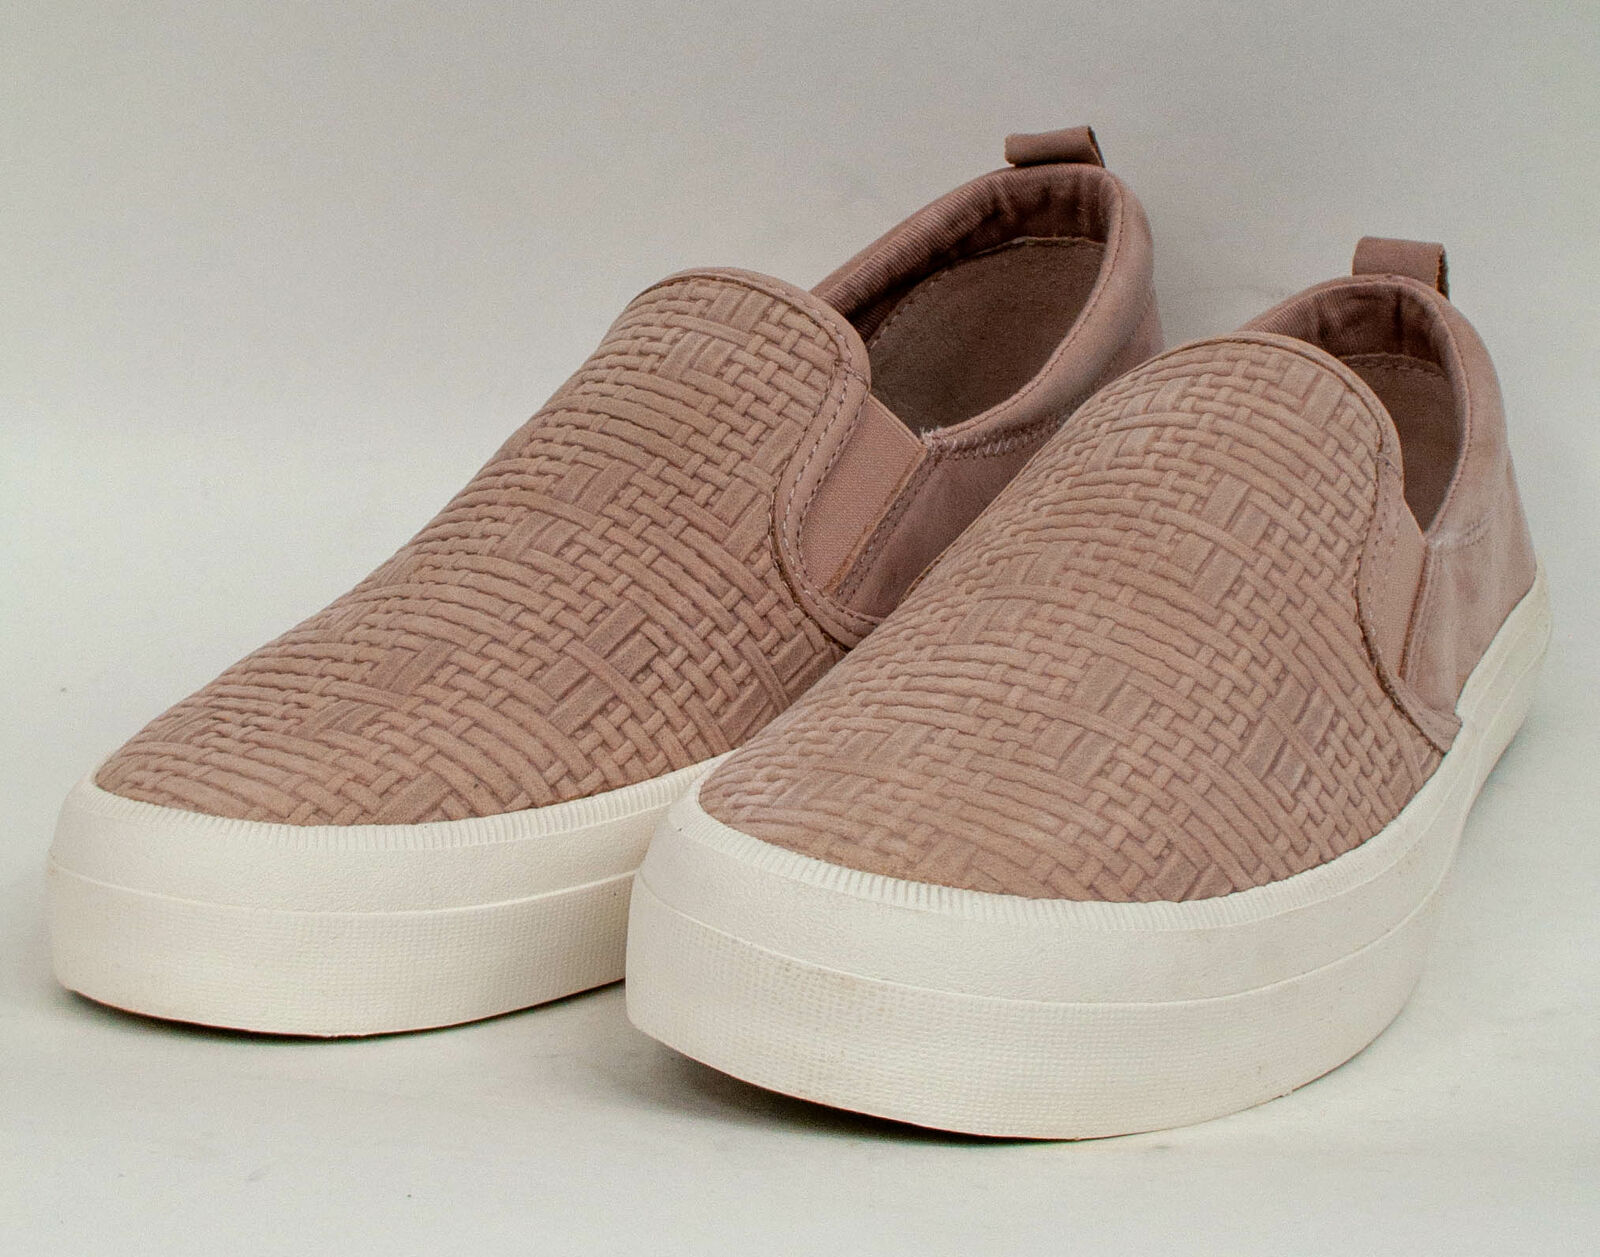 Sperry Crest Twin Gore Woven Embossed Sneaker Rose Dust Size 10M MSRP